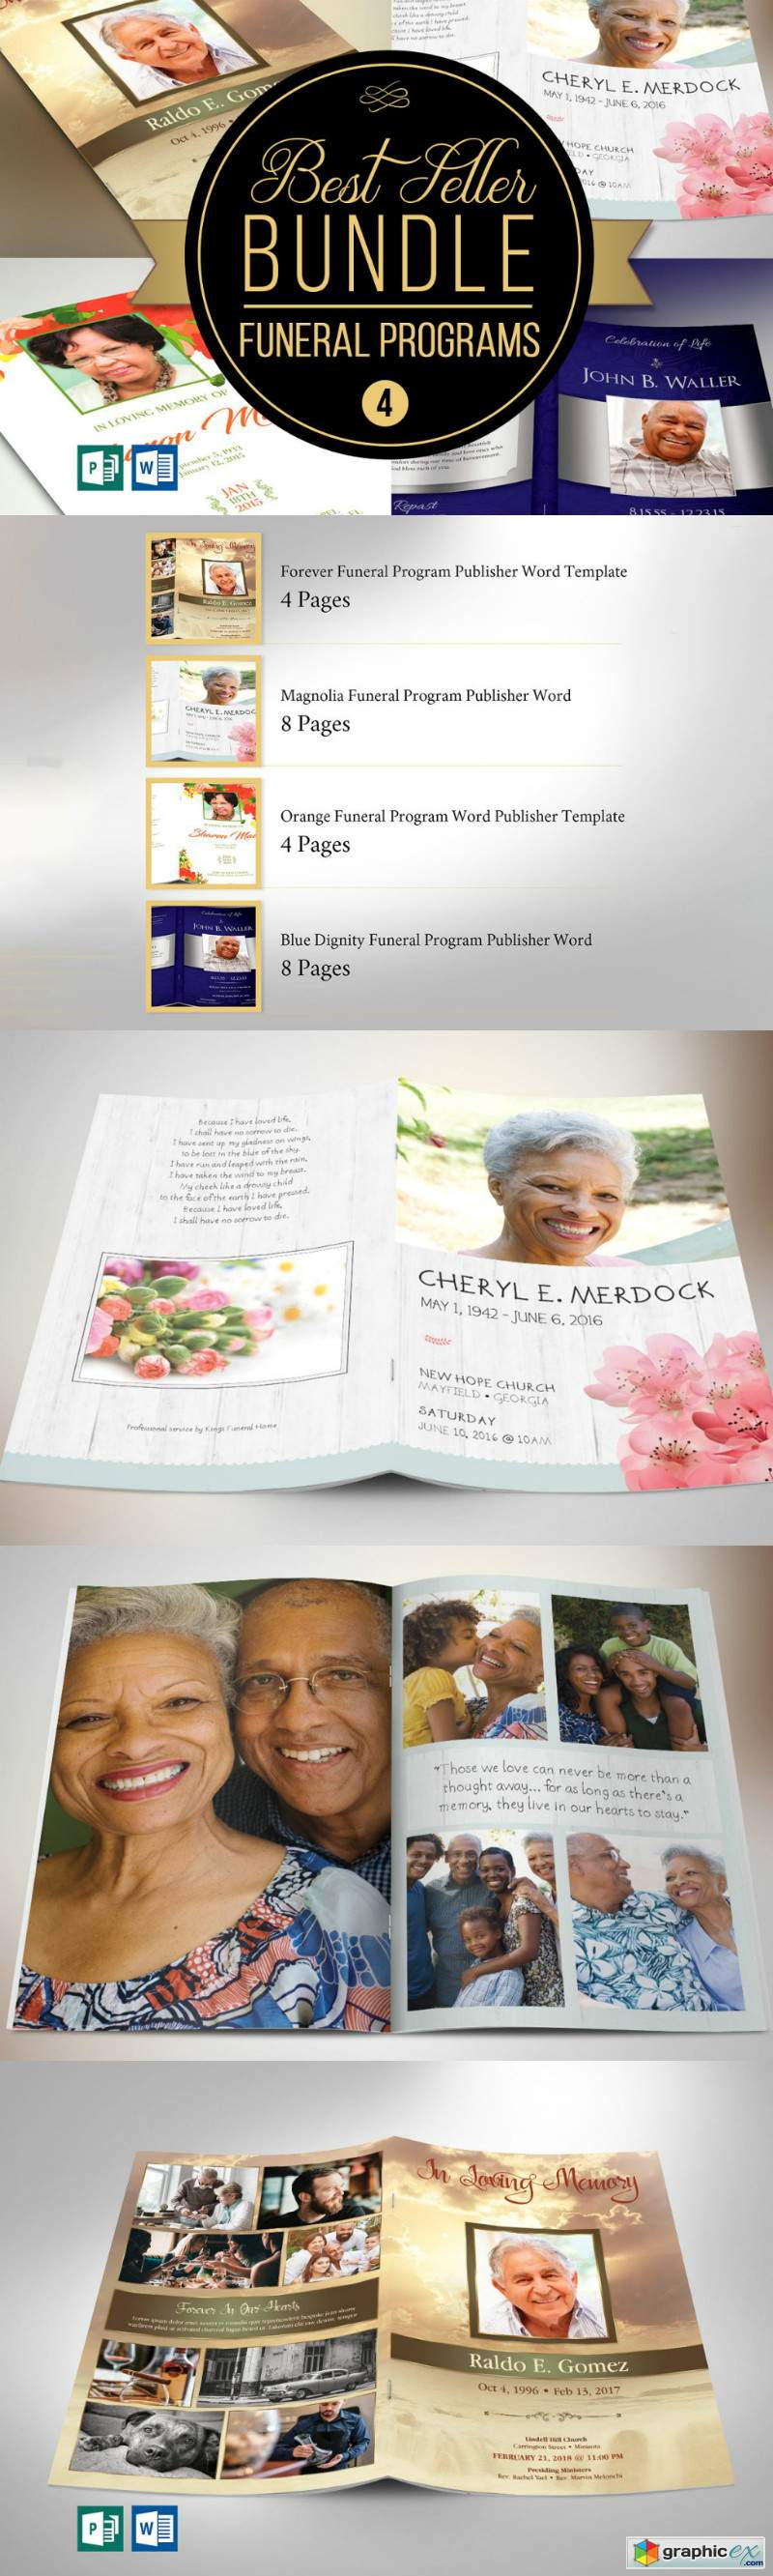 Best Seller Funeral Program Bundle